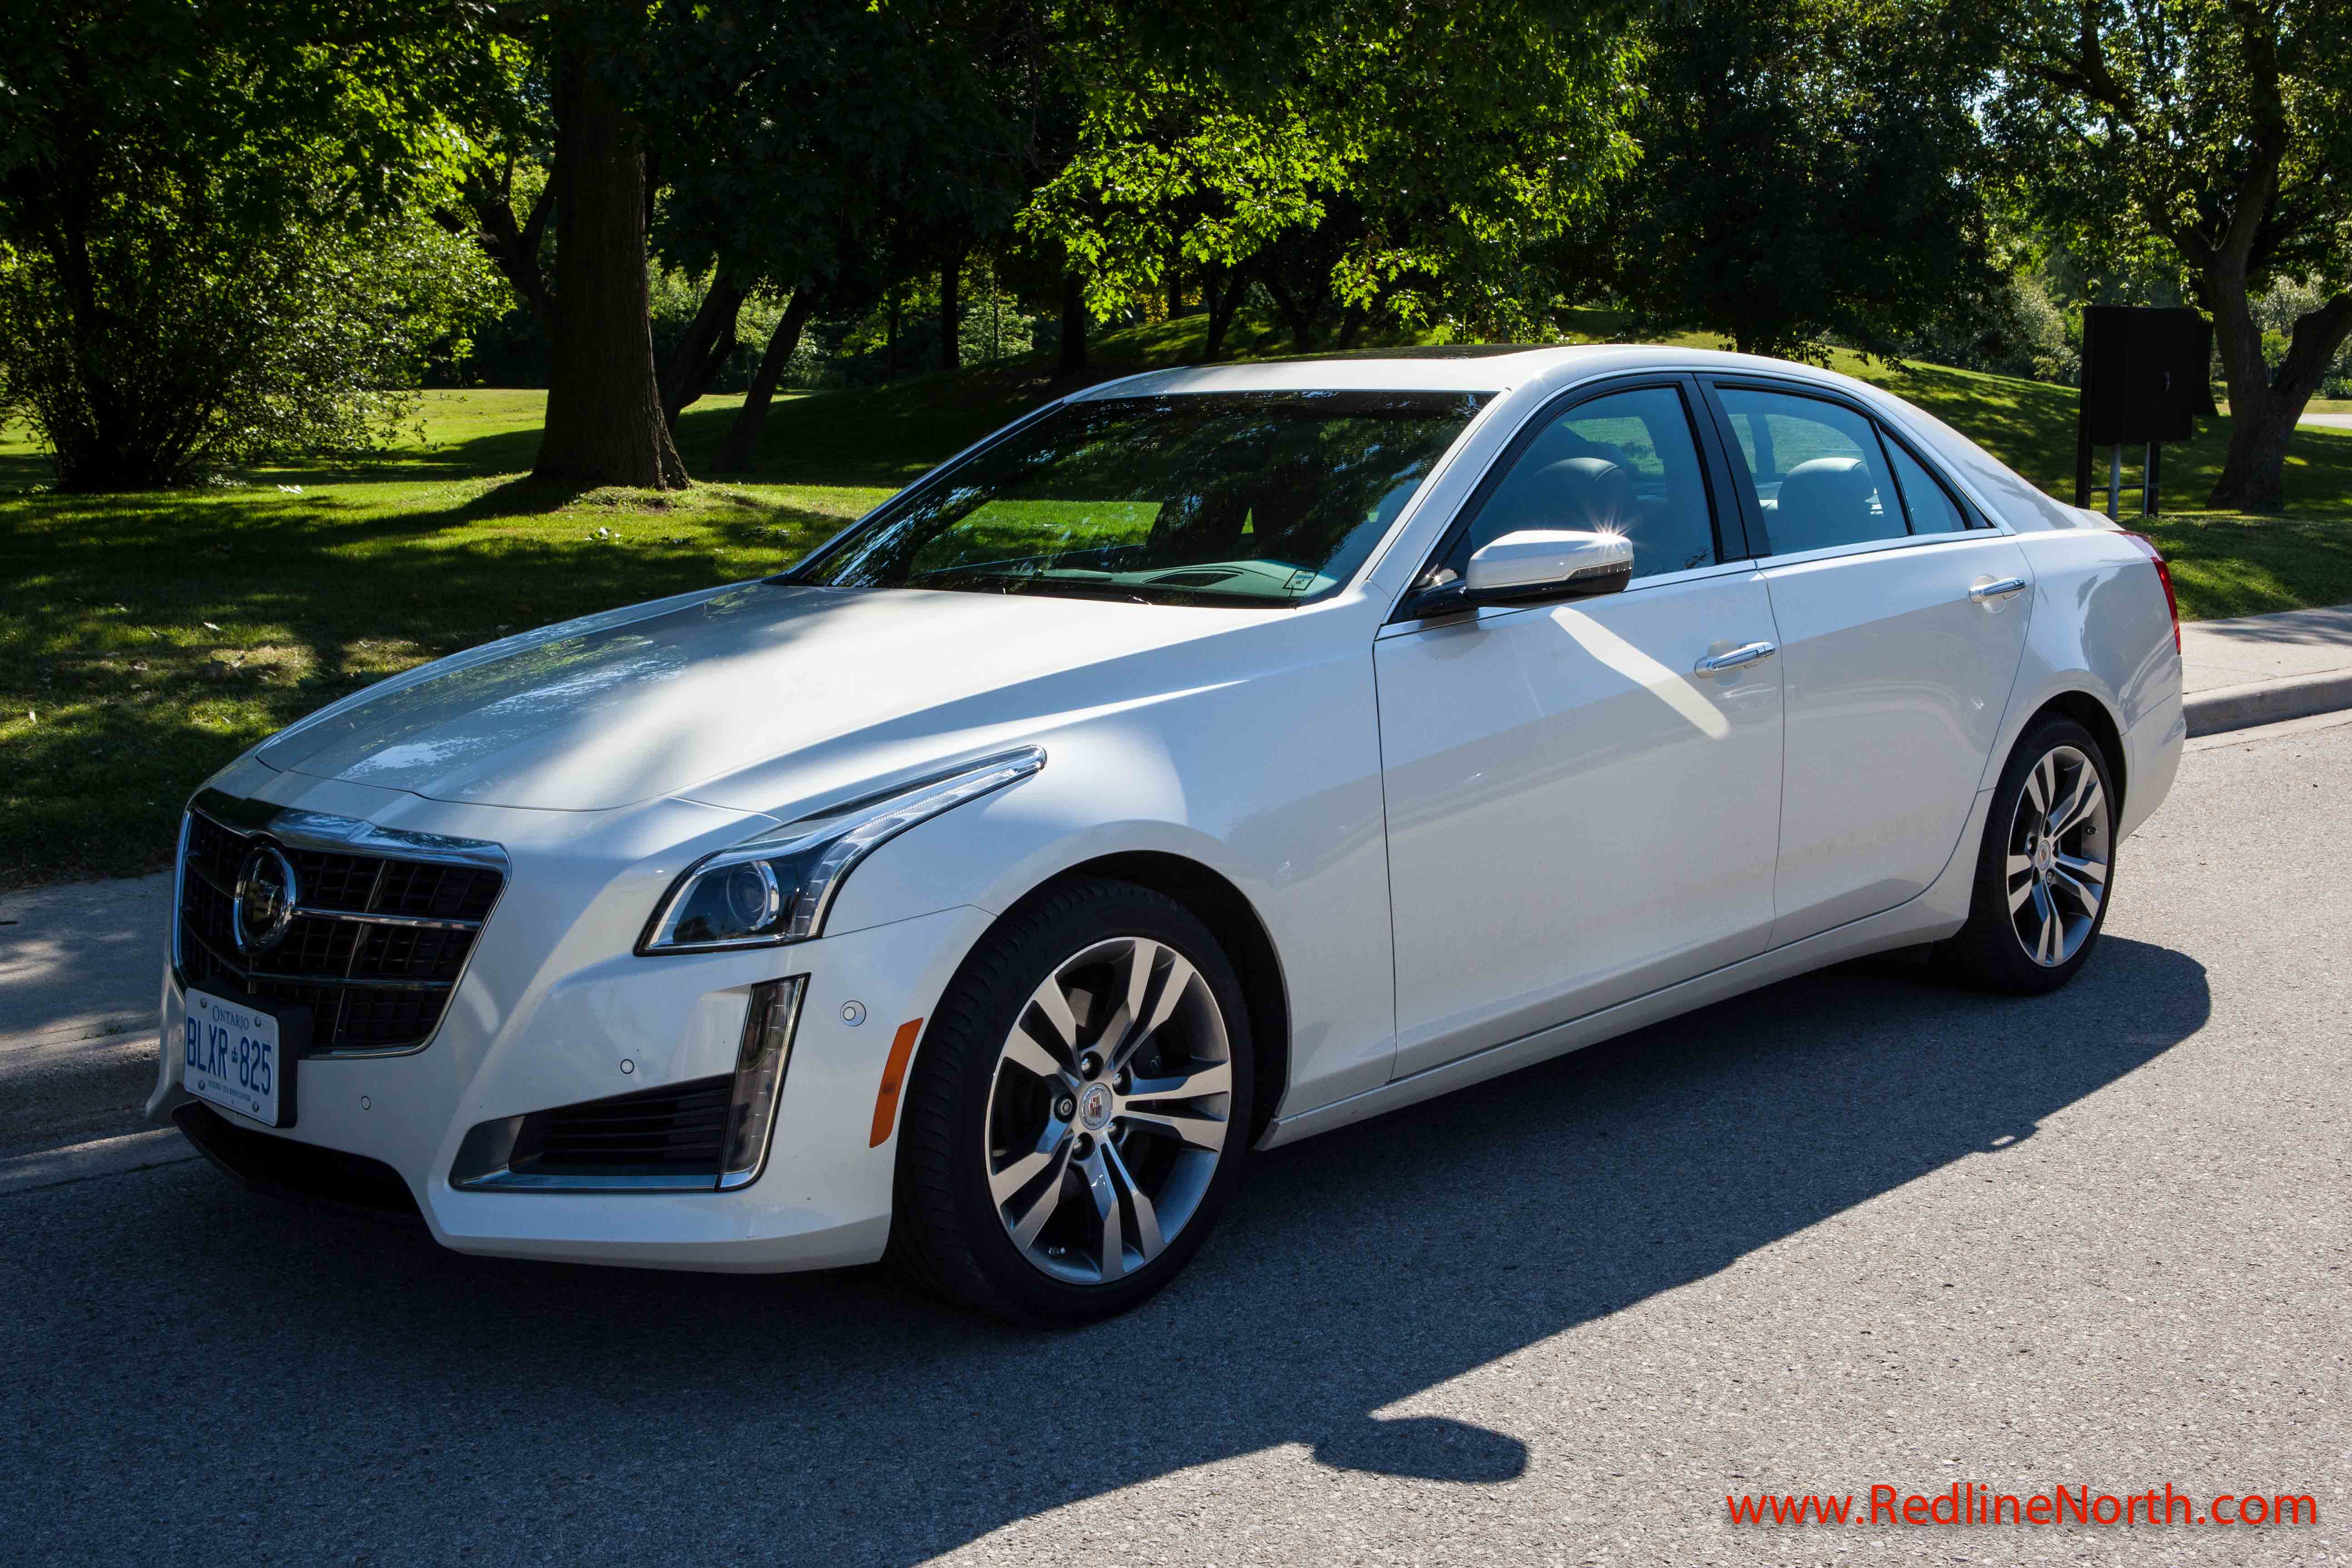 2014 cadillac cts vsport review redlinenorth. Black Bedroom Furniture Sets. Home Design Ideas